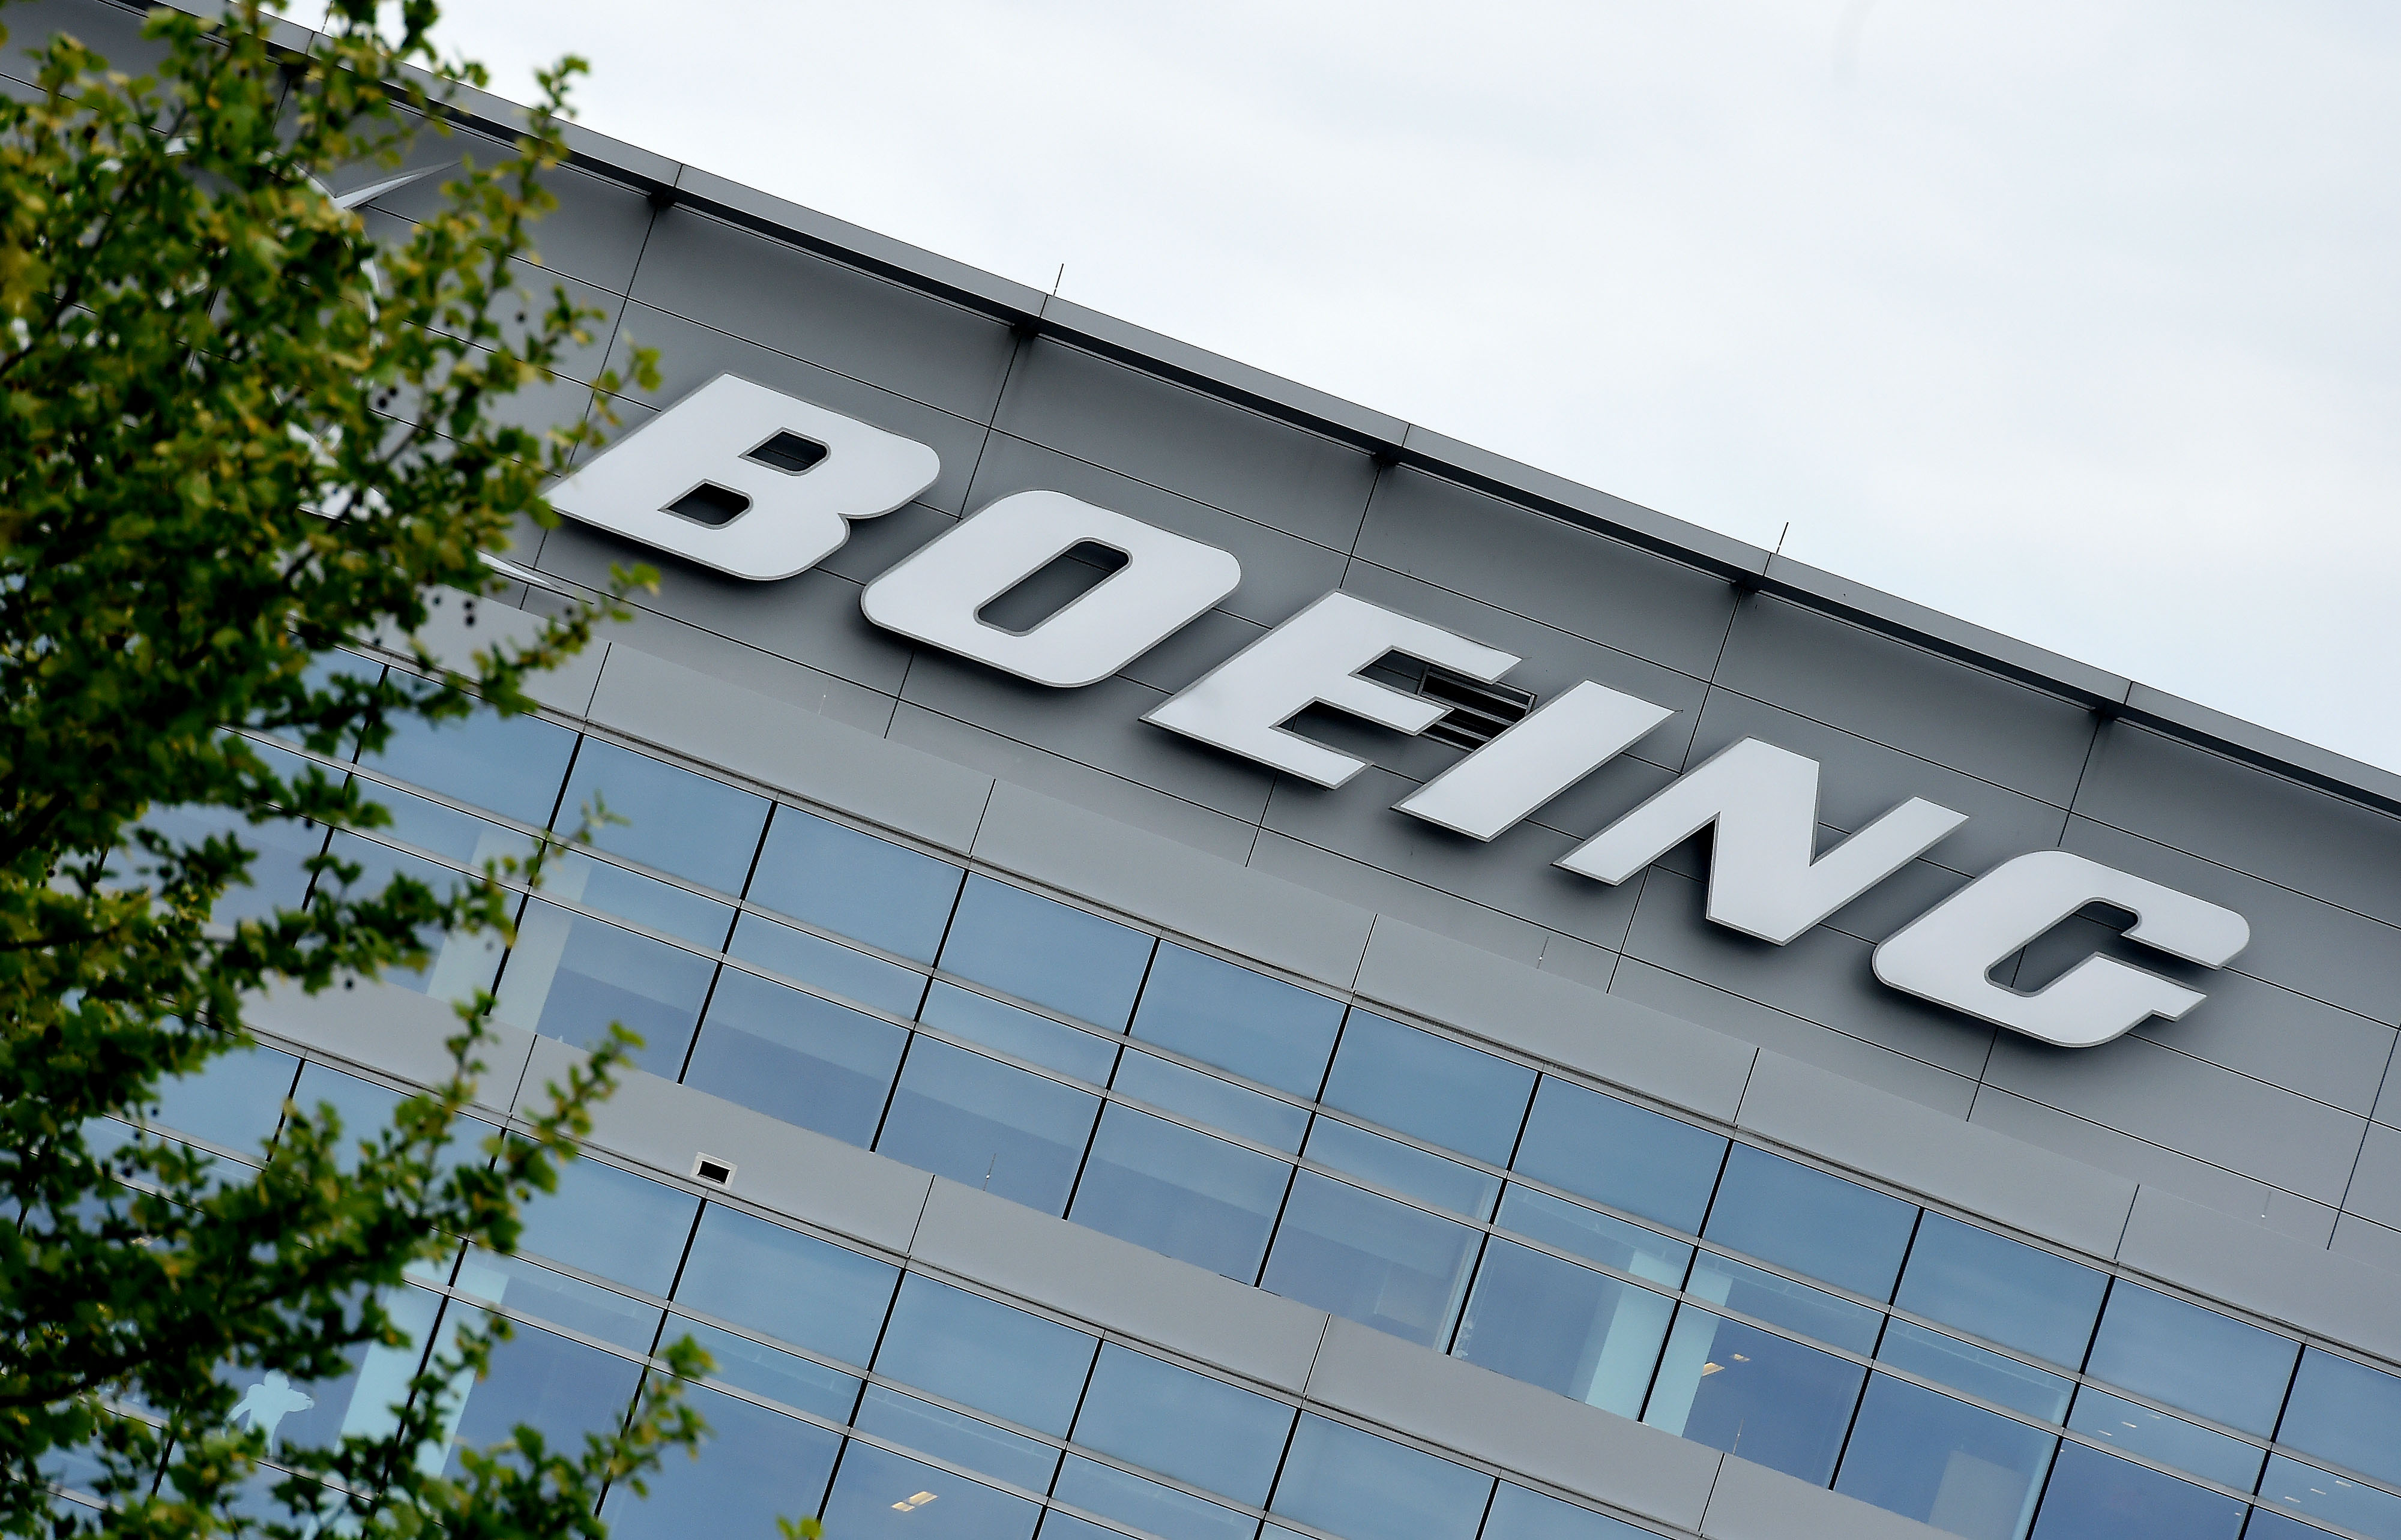 Boeing to pay $2.5 bn fine over 737 MAX: US Department of Justice